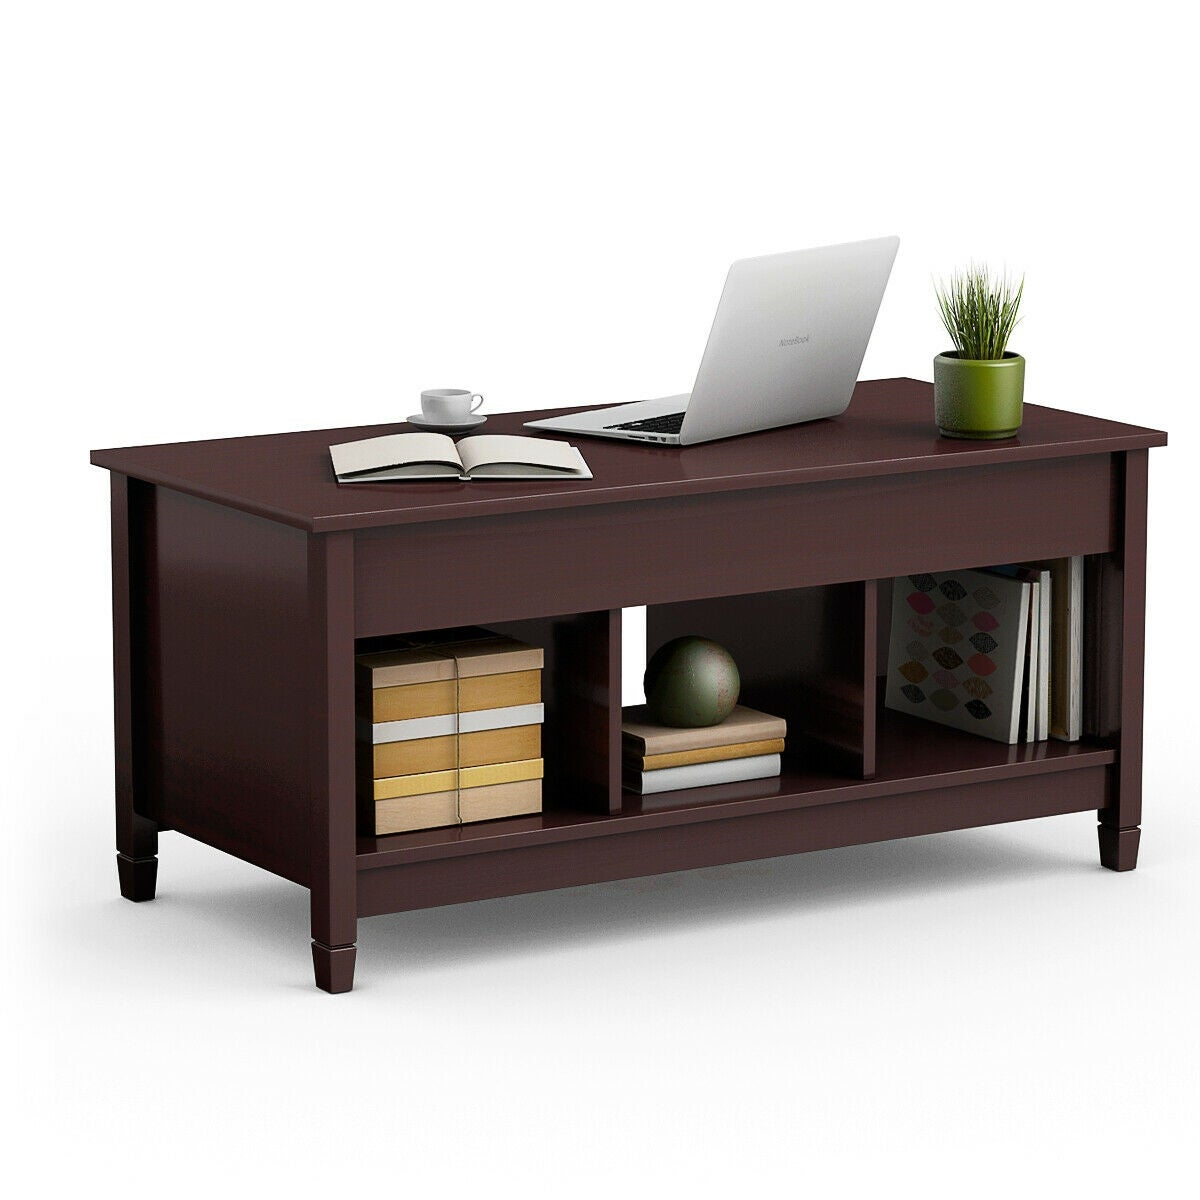 Costway Lift Top Coffee Table W Hidden Compartment And Storage Shelves Modern Furniture As Pic